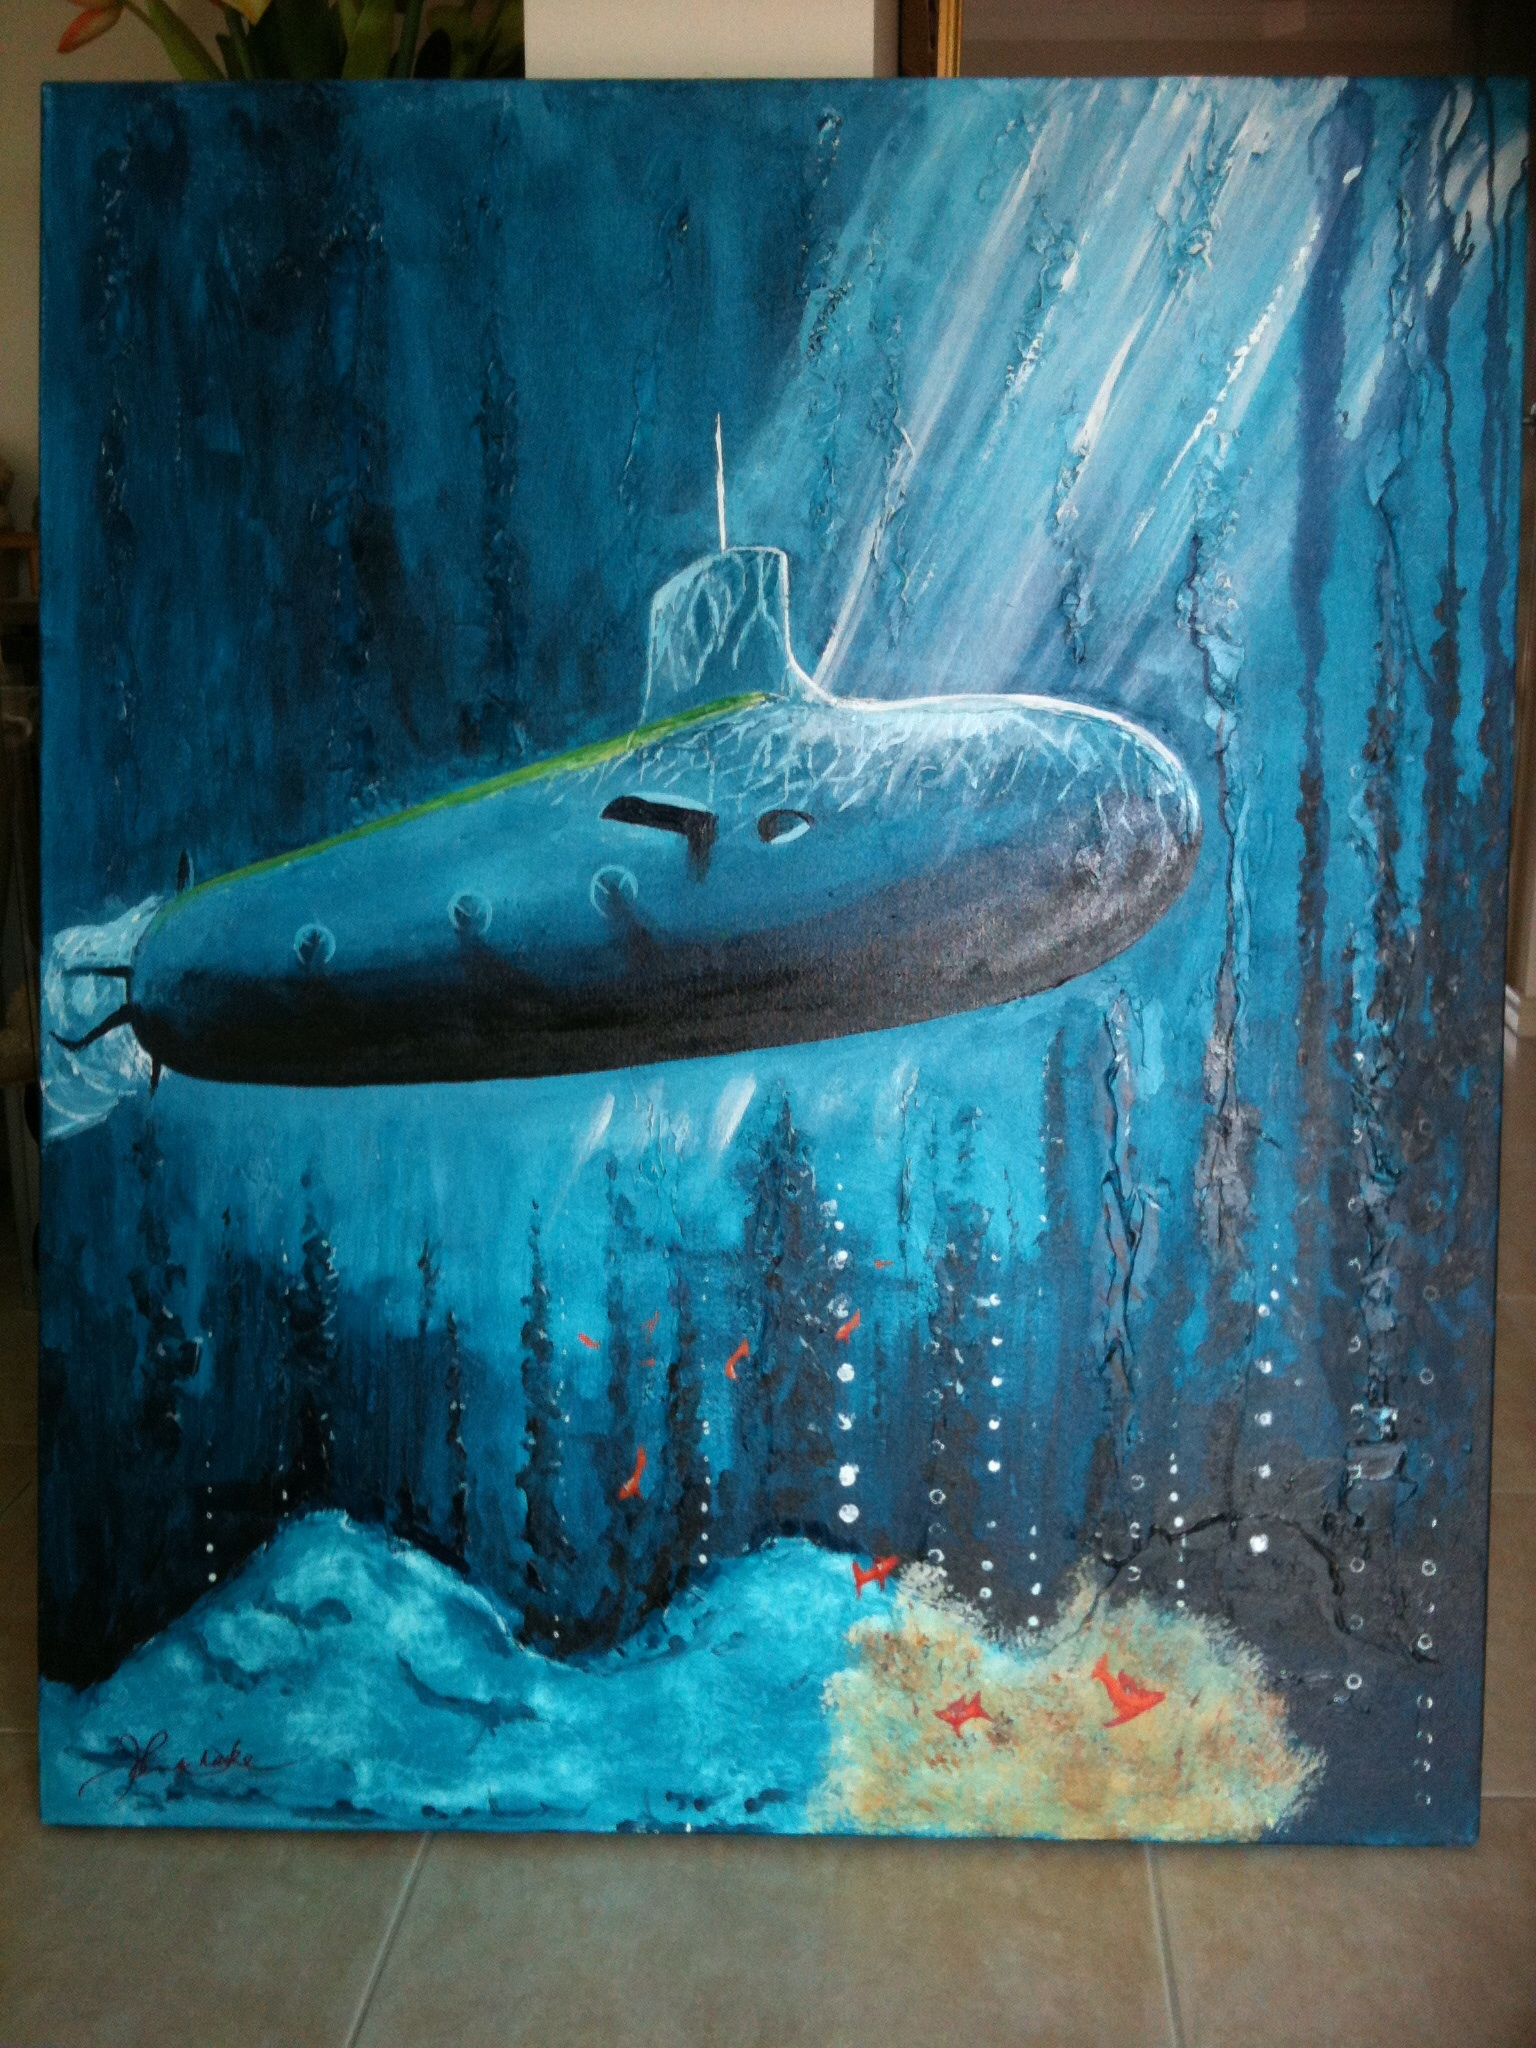 Nuclear Grace artwork by William John - art listed for sale on Artplode